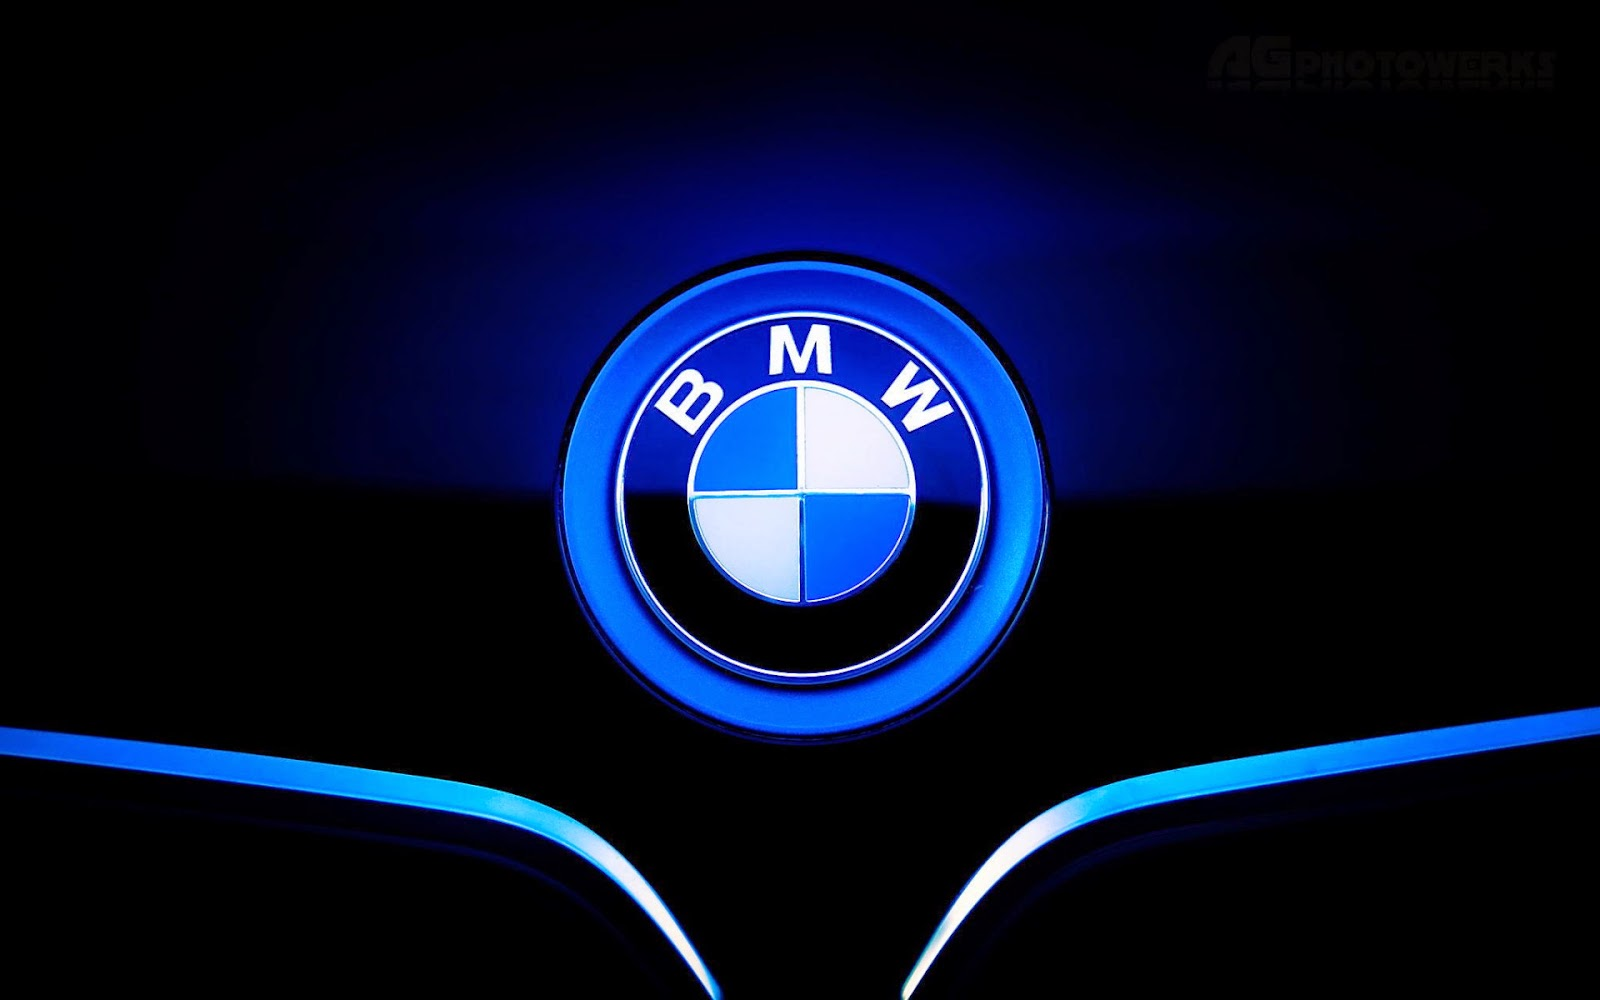 Bmw Symbole Bordcomputer. 14877627 10154407876225813 ...